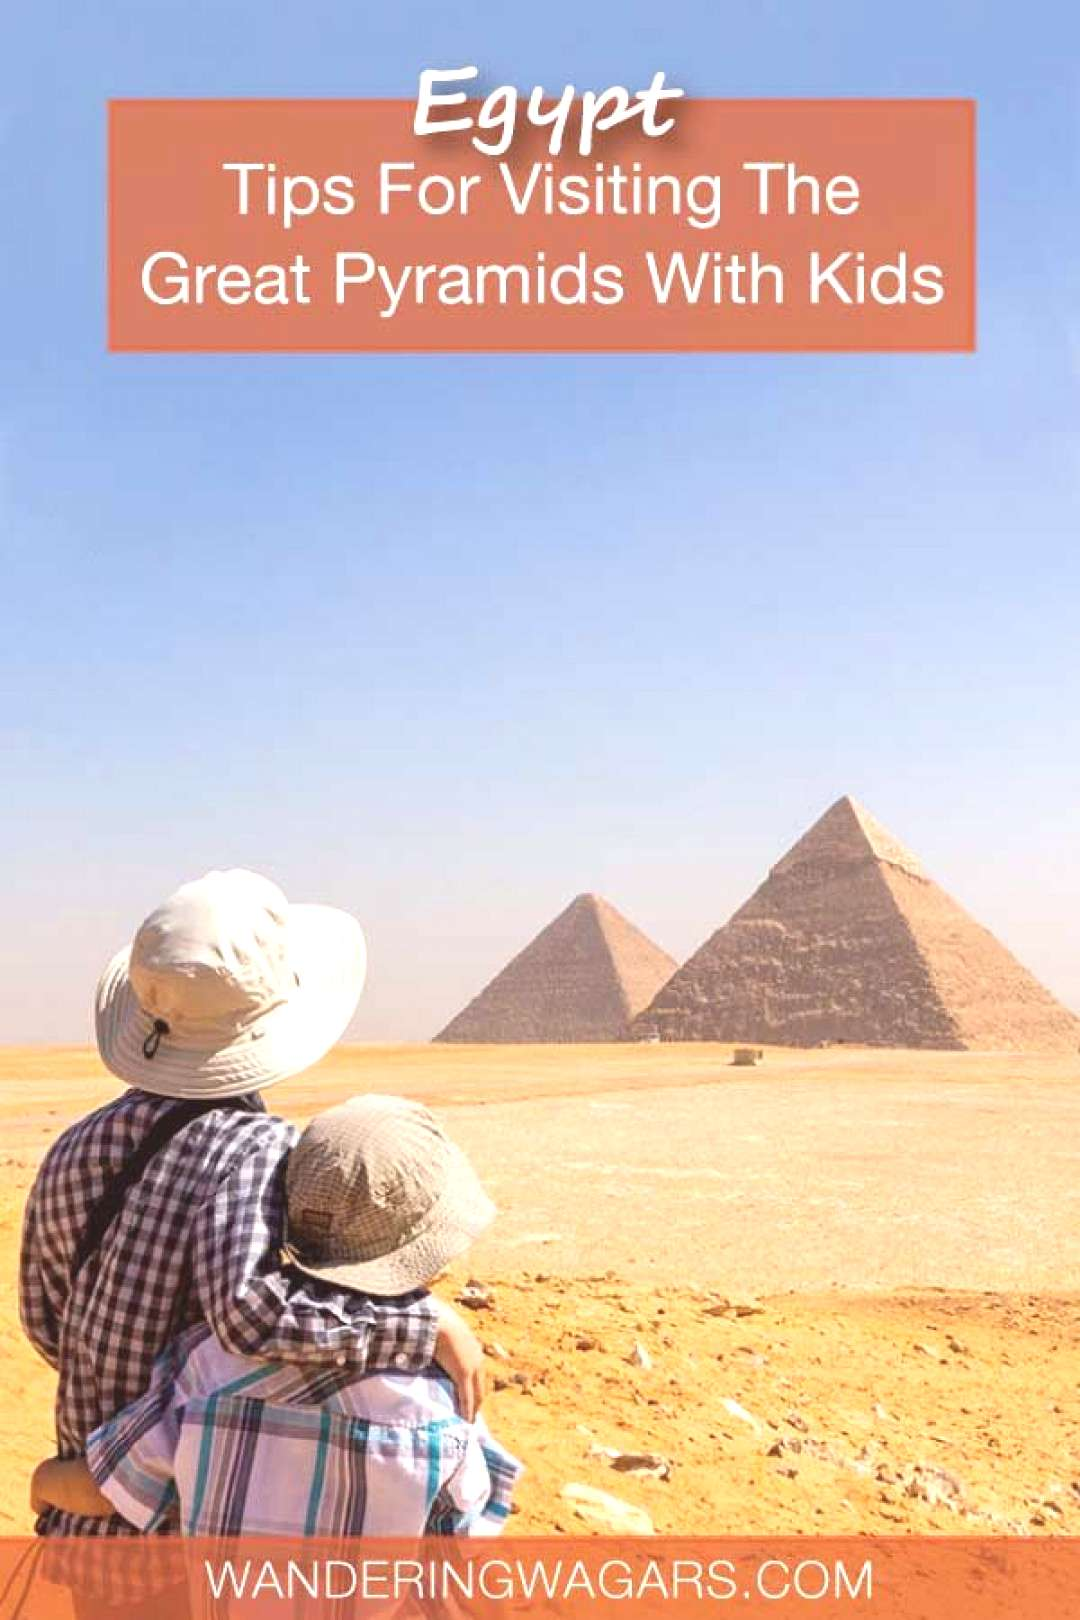 Our visit to the Great Pyramids of Egypt was amazing. If youre planning on making the trip, these